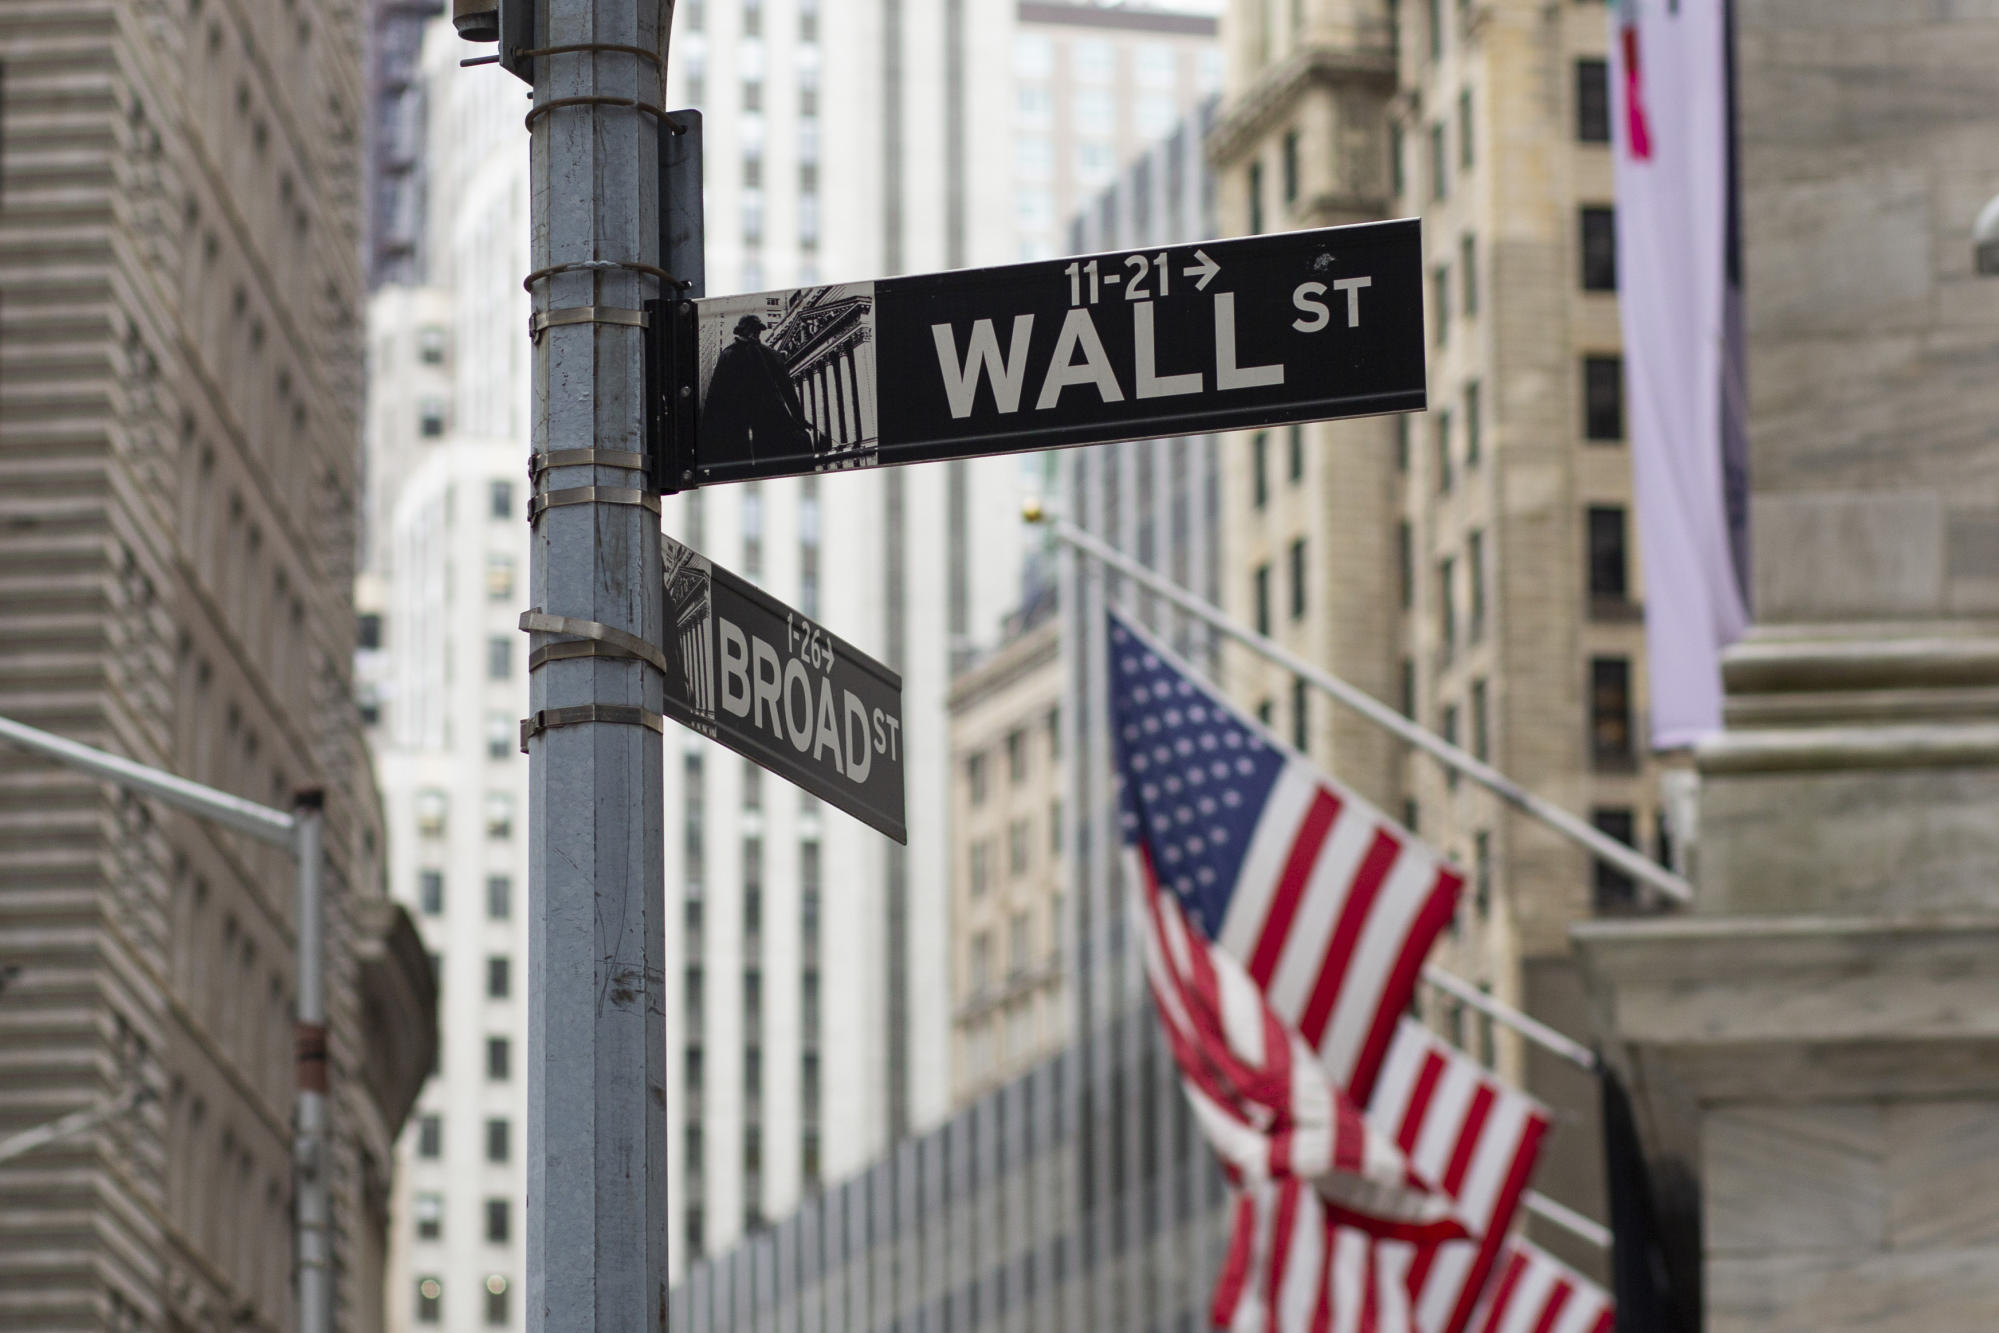 Stock market news live updates: Stocks, Treasury yields rise as Dow recovers after worst weekly loss since October - Yahoo Finance